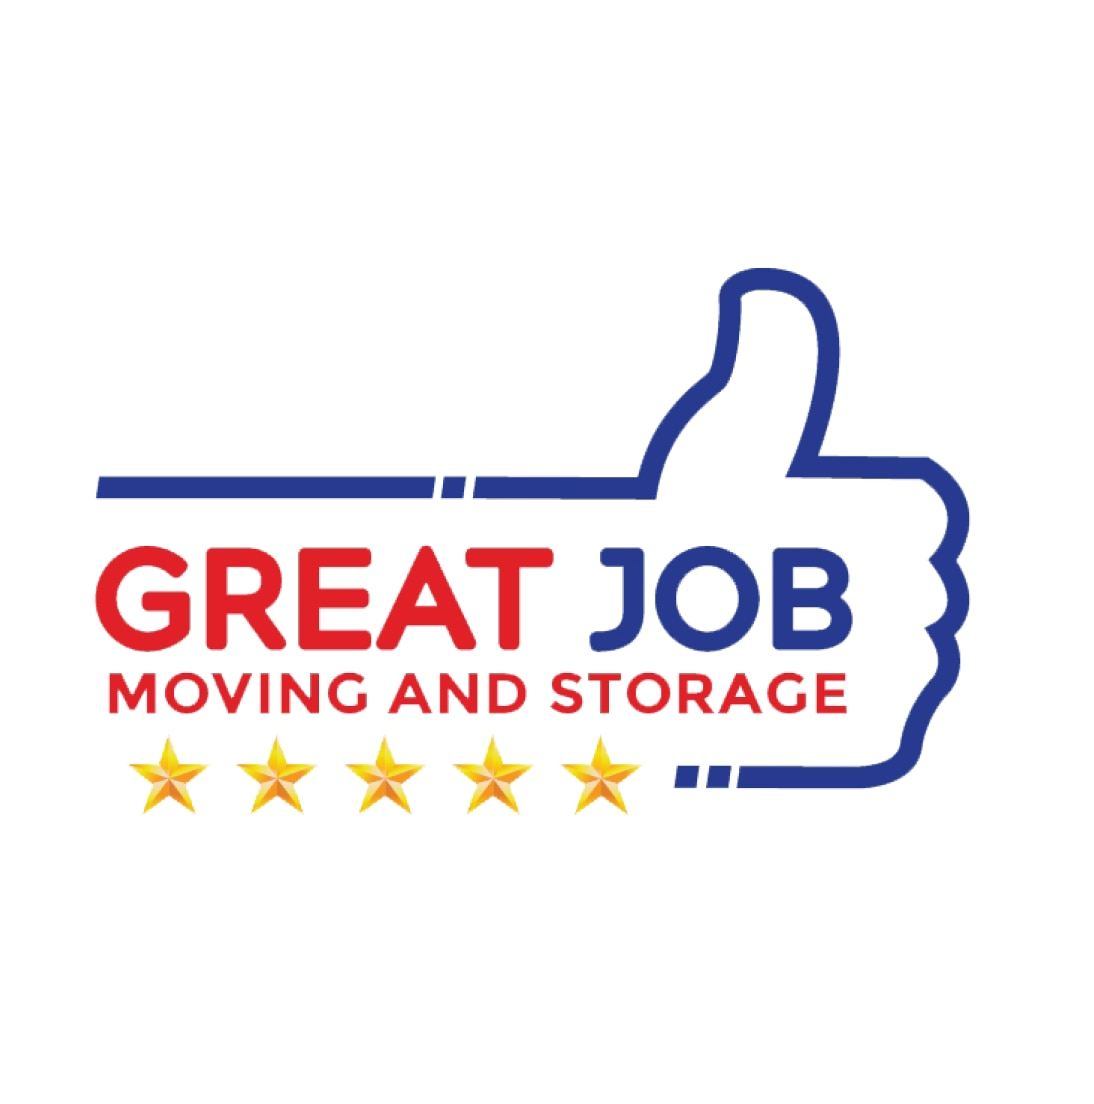 Great Job Moving and Storage logo